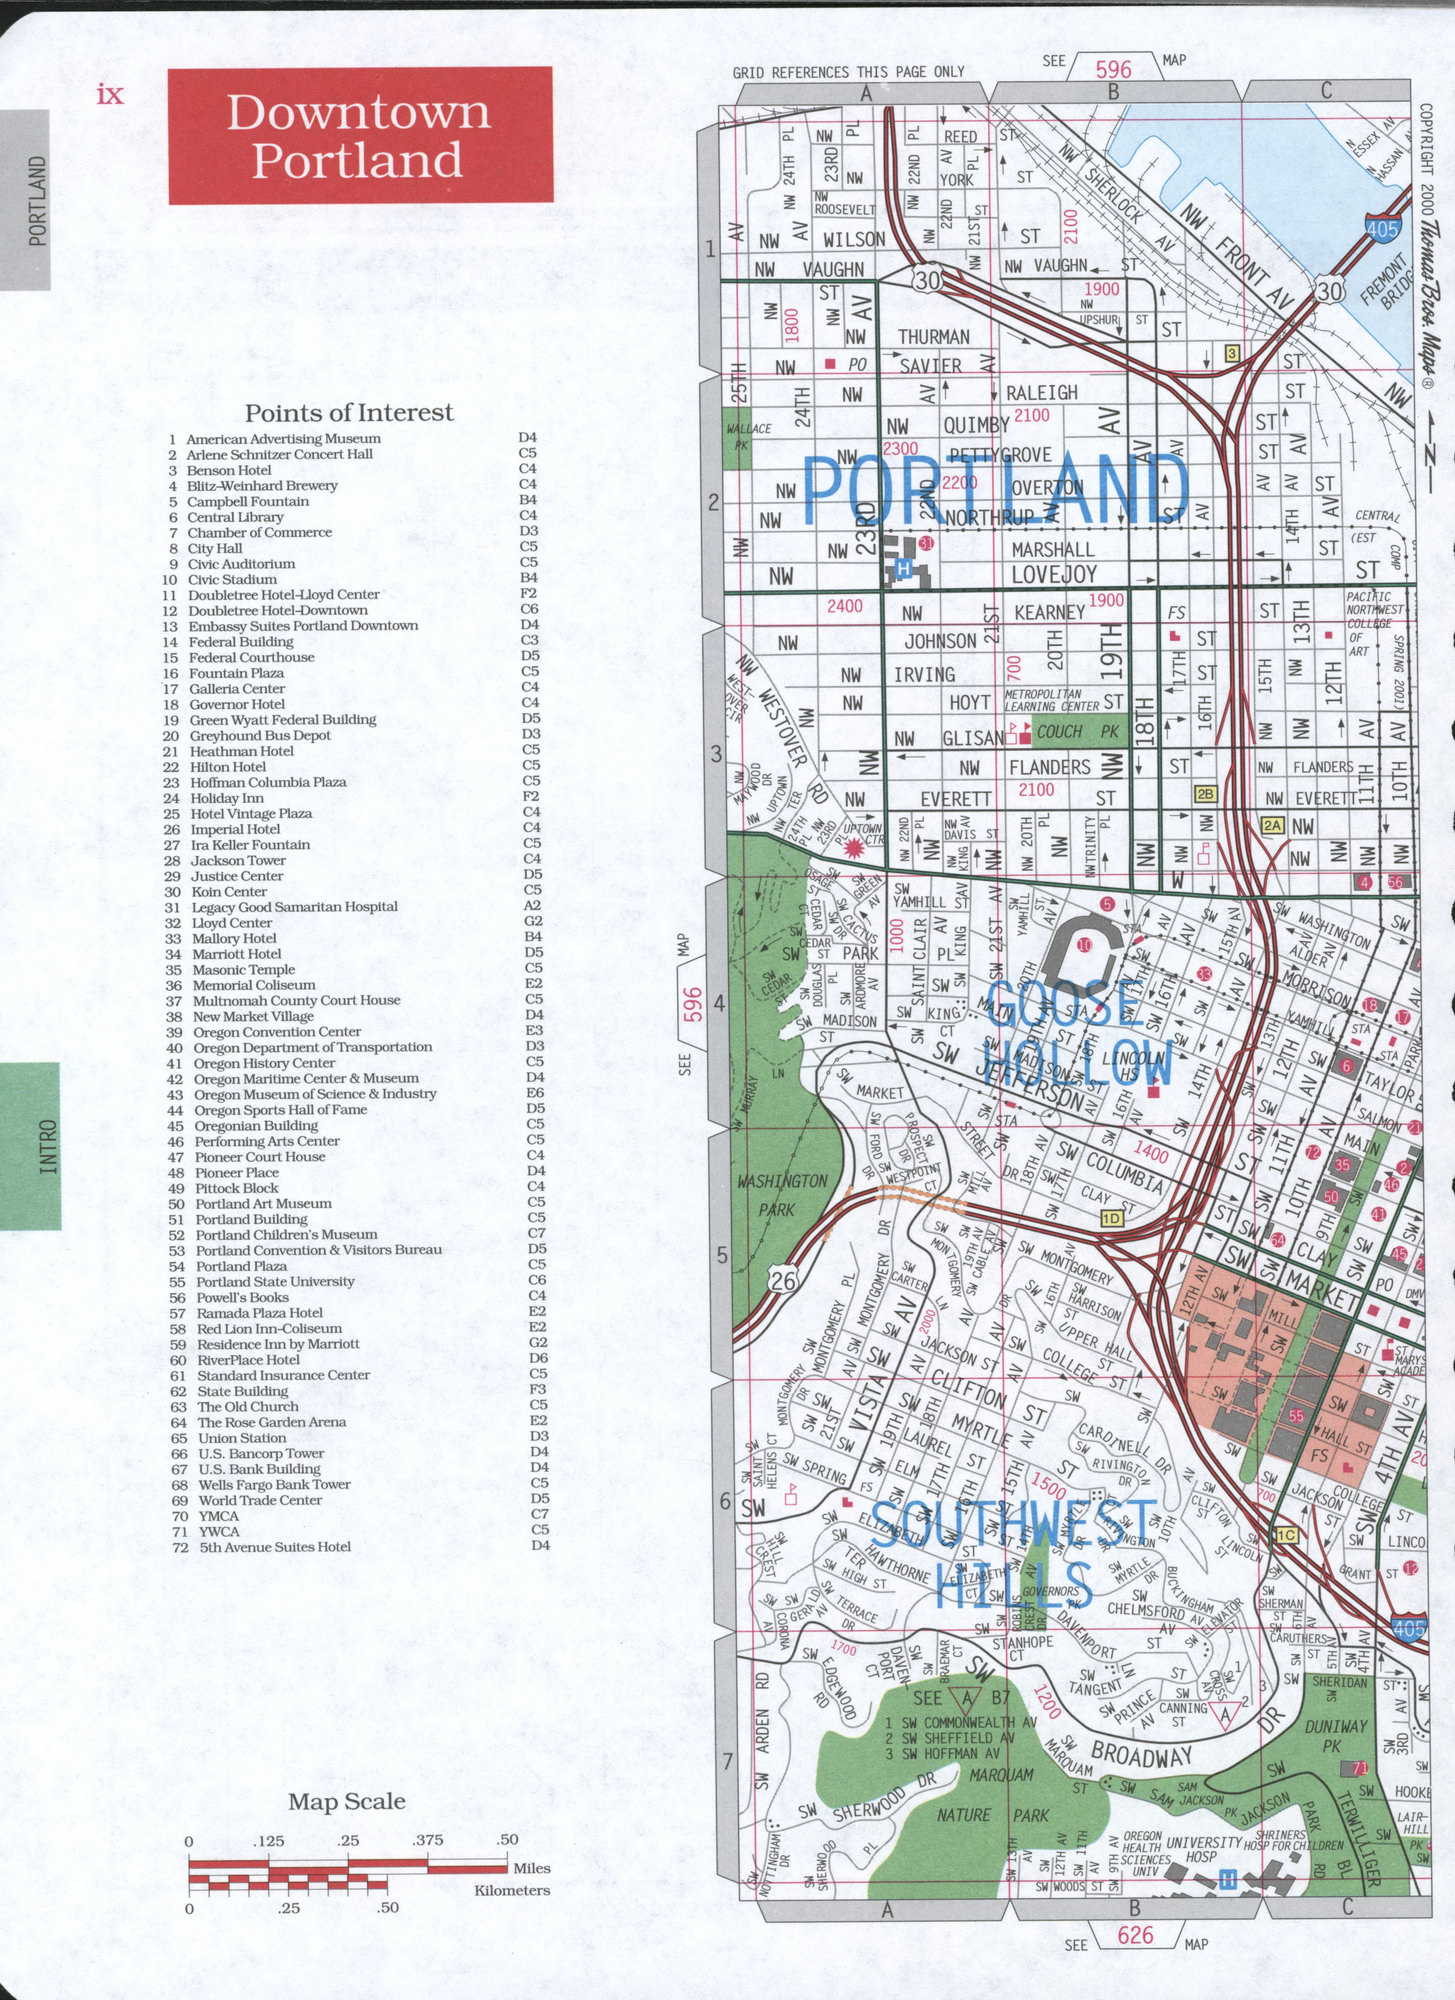 Portland Downtown street map